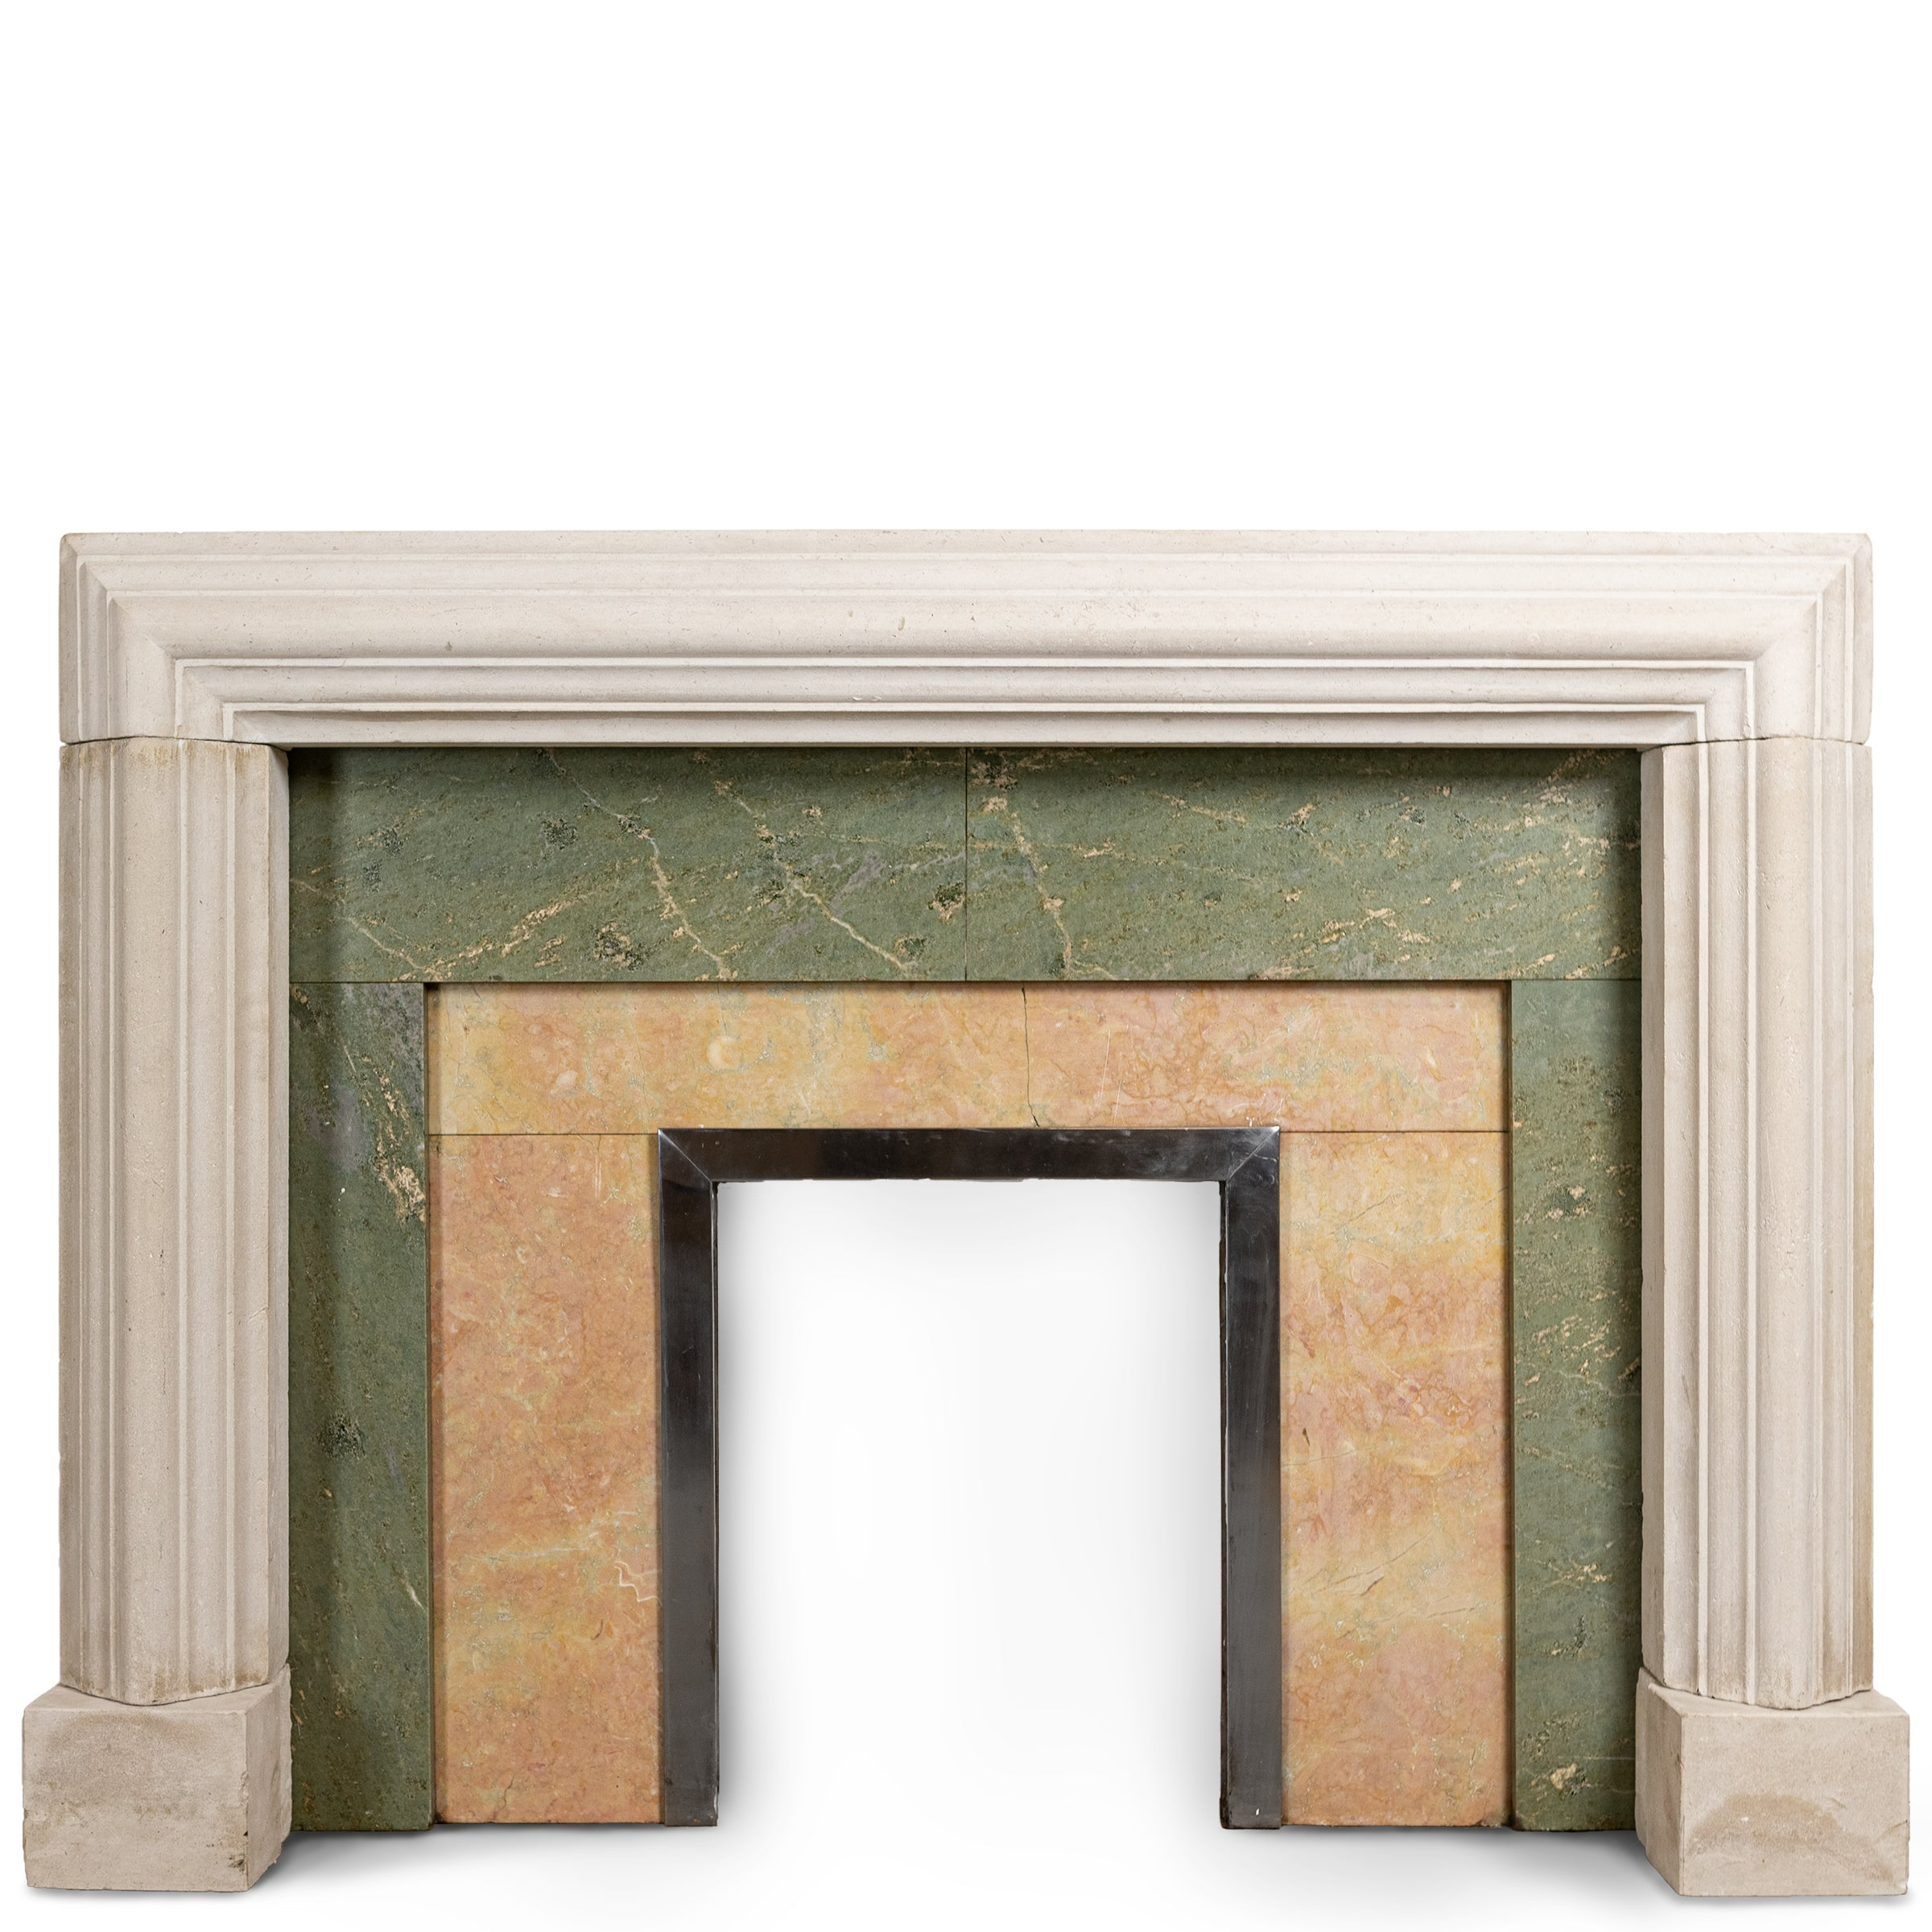 Striking Art Deco Portland Stone Bolection Fireplace Surround with Marble Inserts.